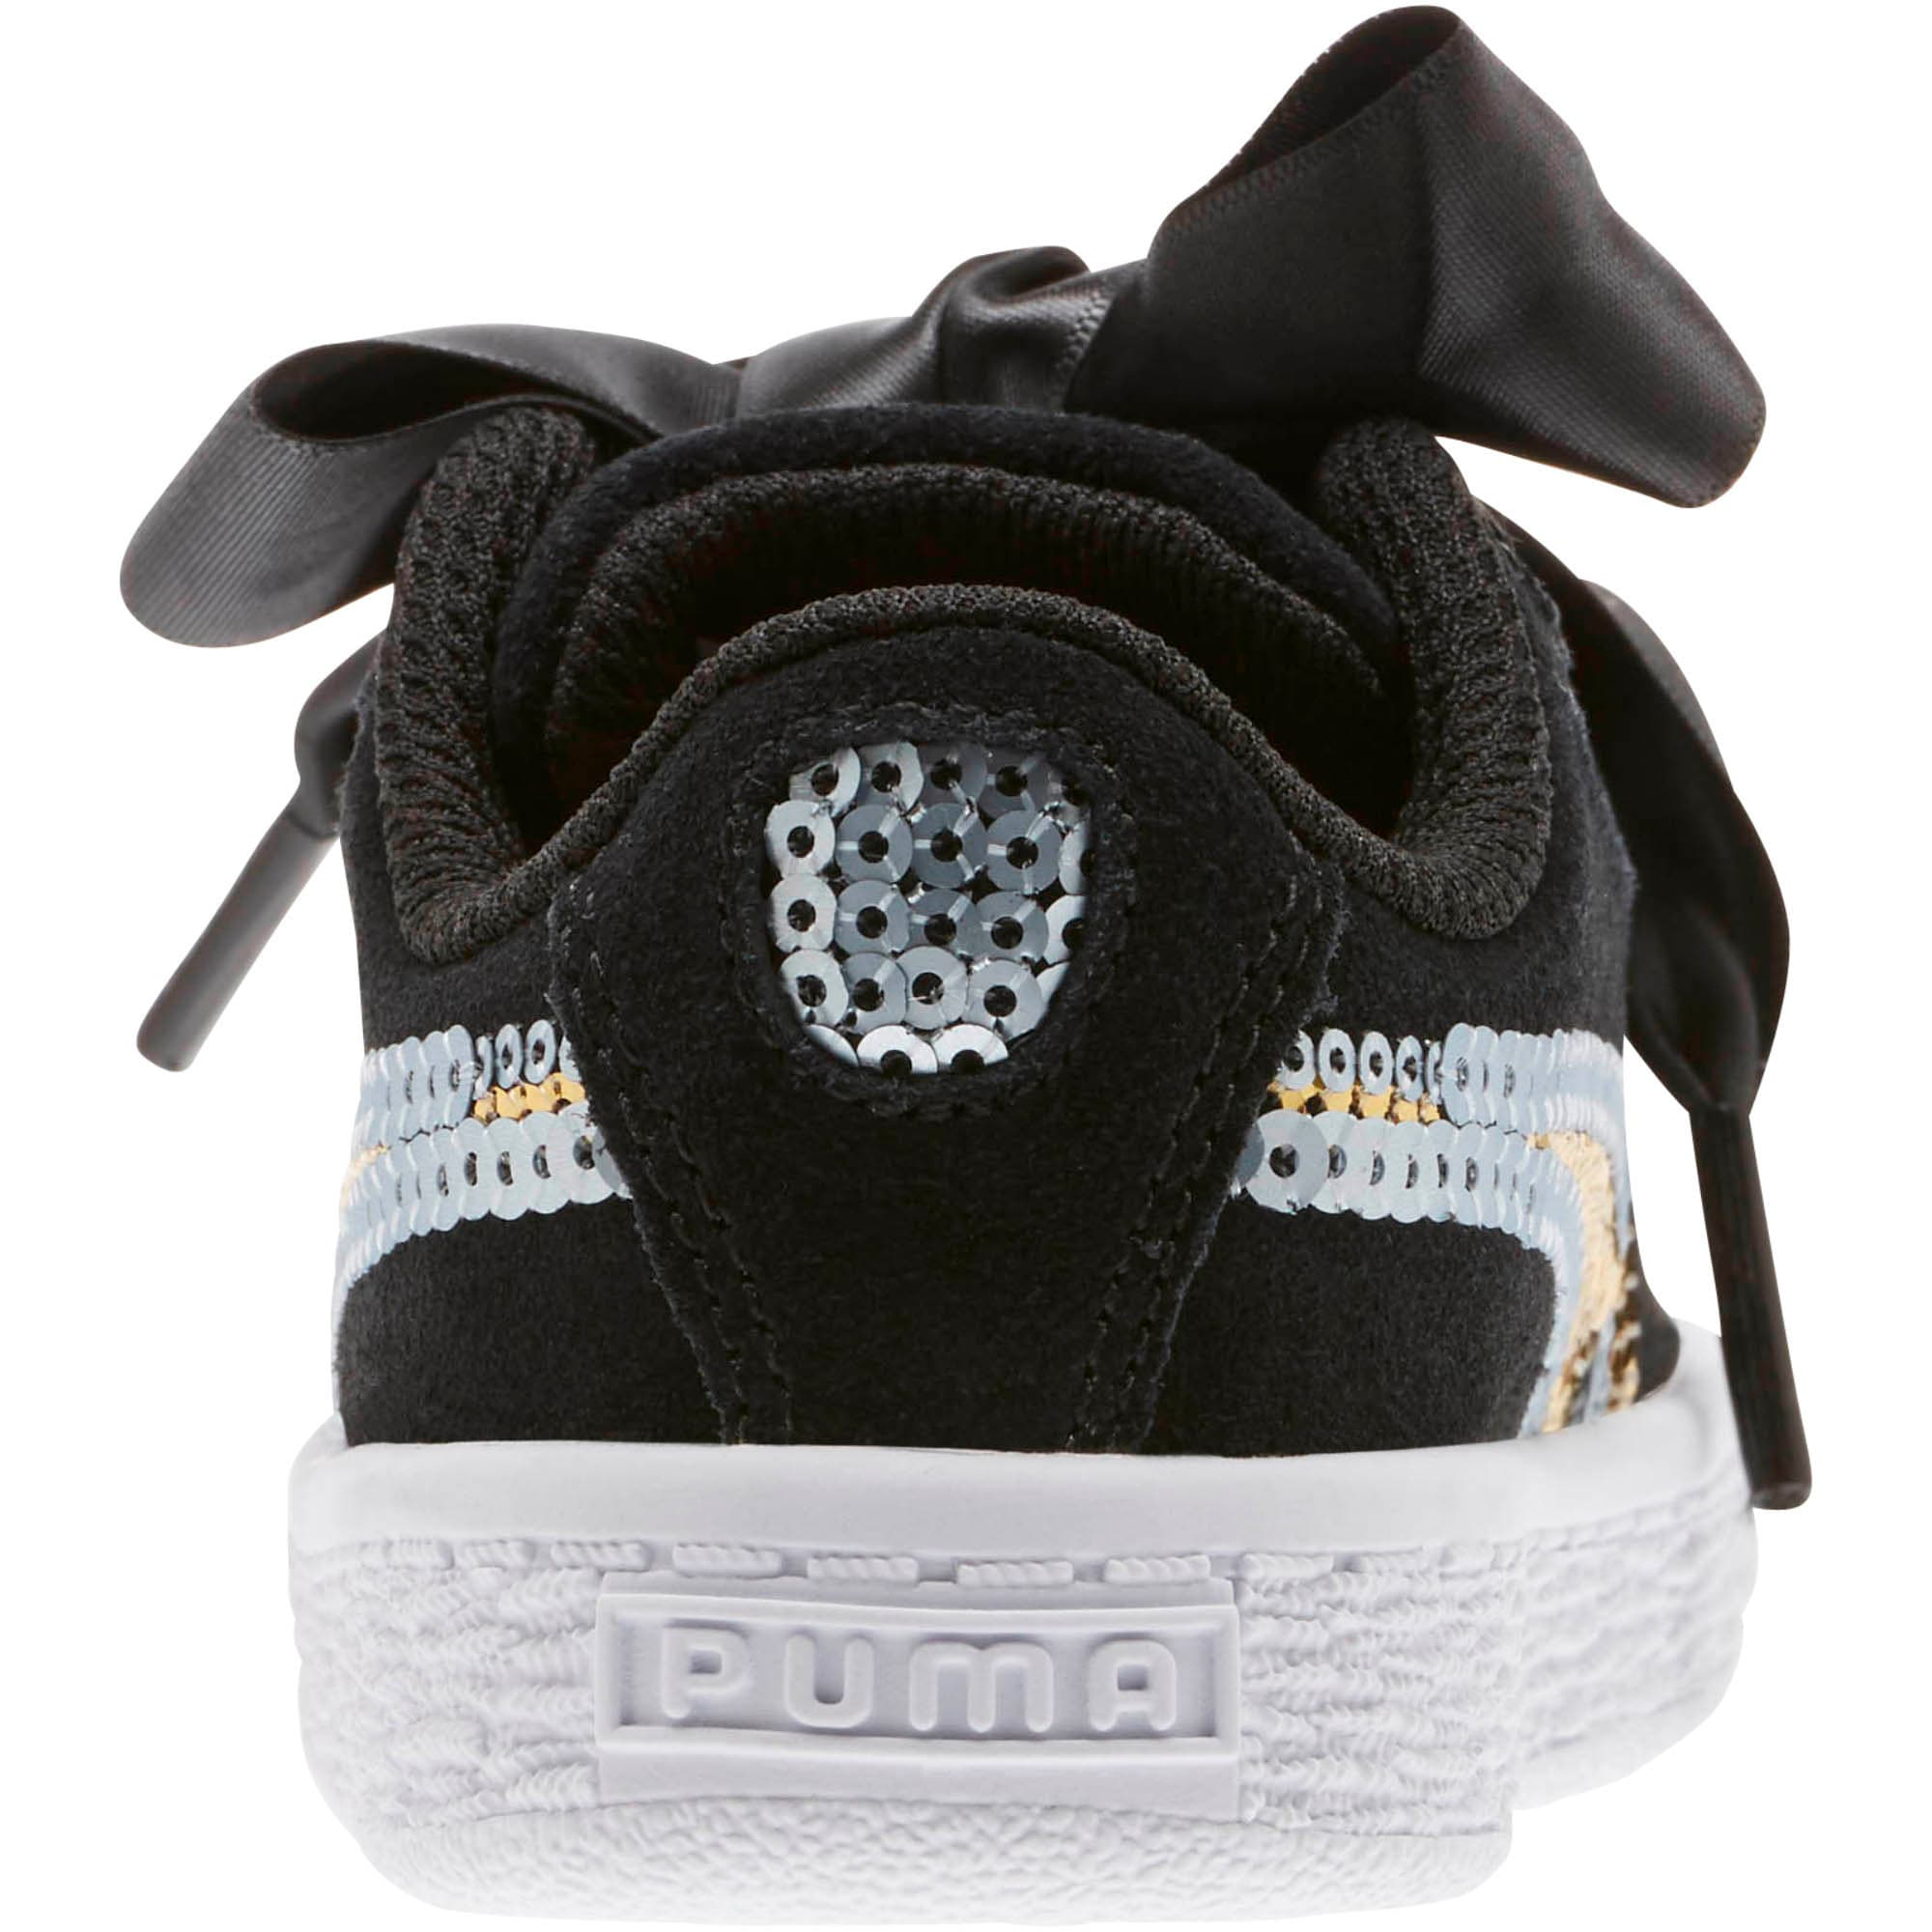 Suede Heart Trailblazer Sequin Little Kids' Shoes, Puma Black-Puma Team Gold, large